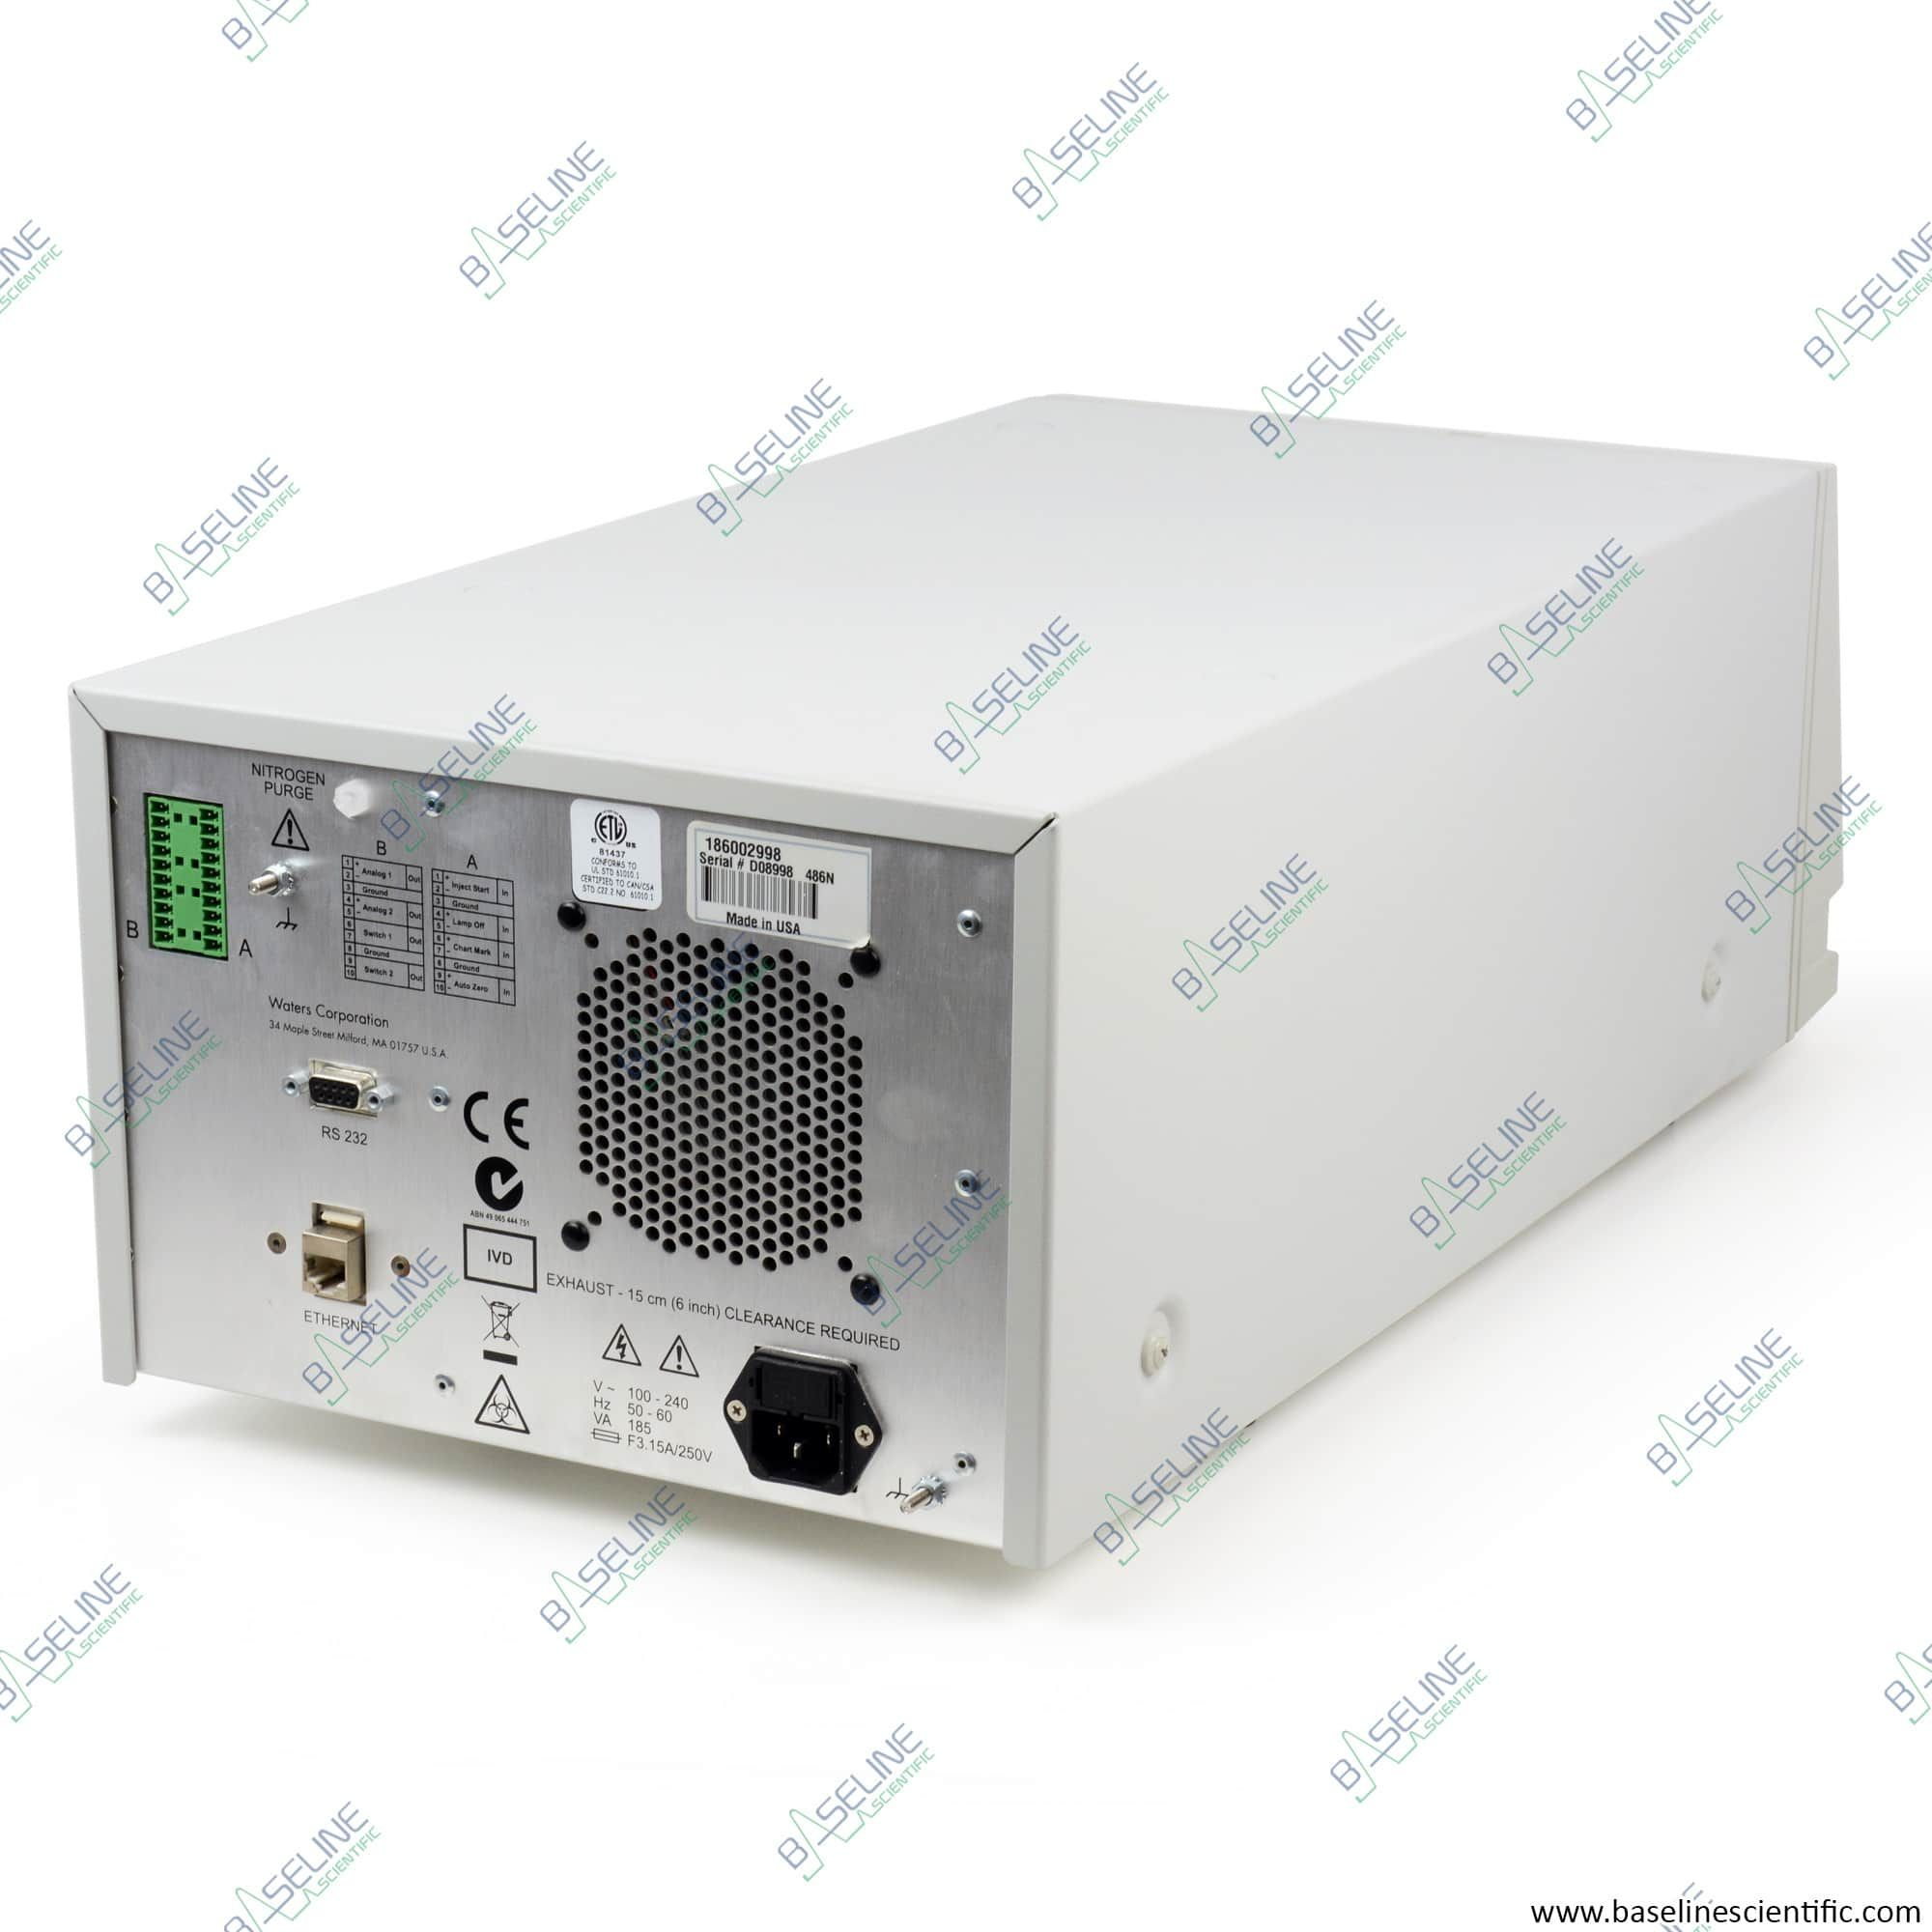 Refurbished Waters 2998 Photodiode Array Detector with ONE YEAR WARRANTY